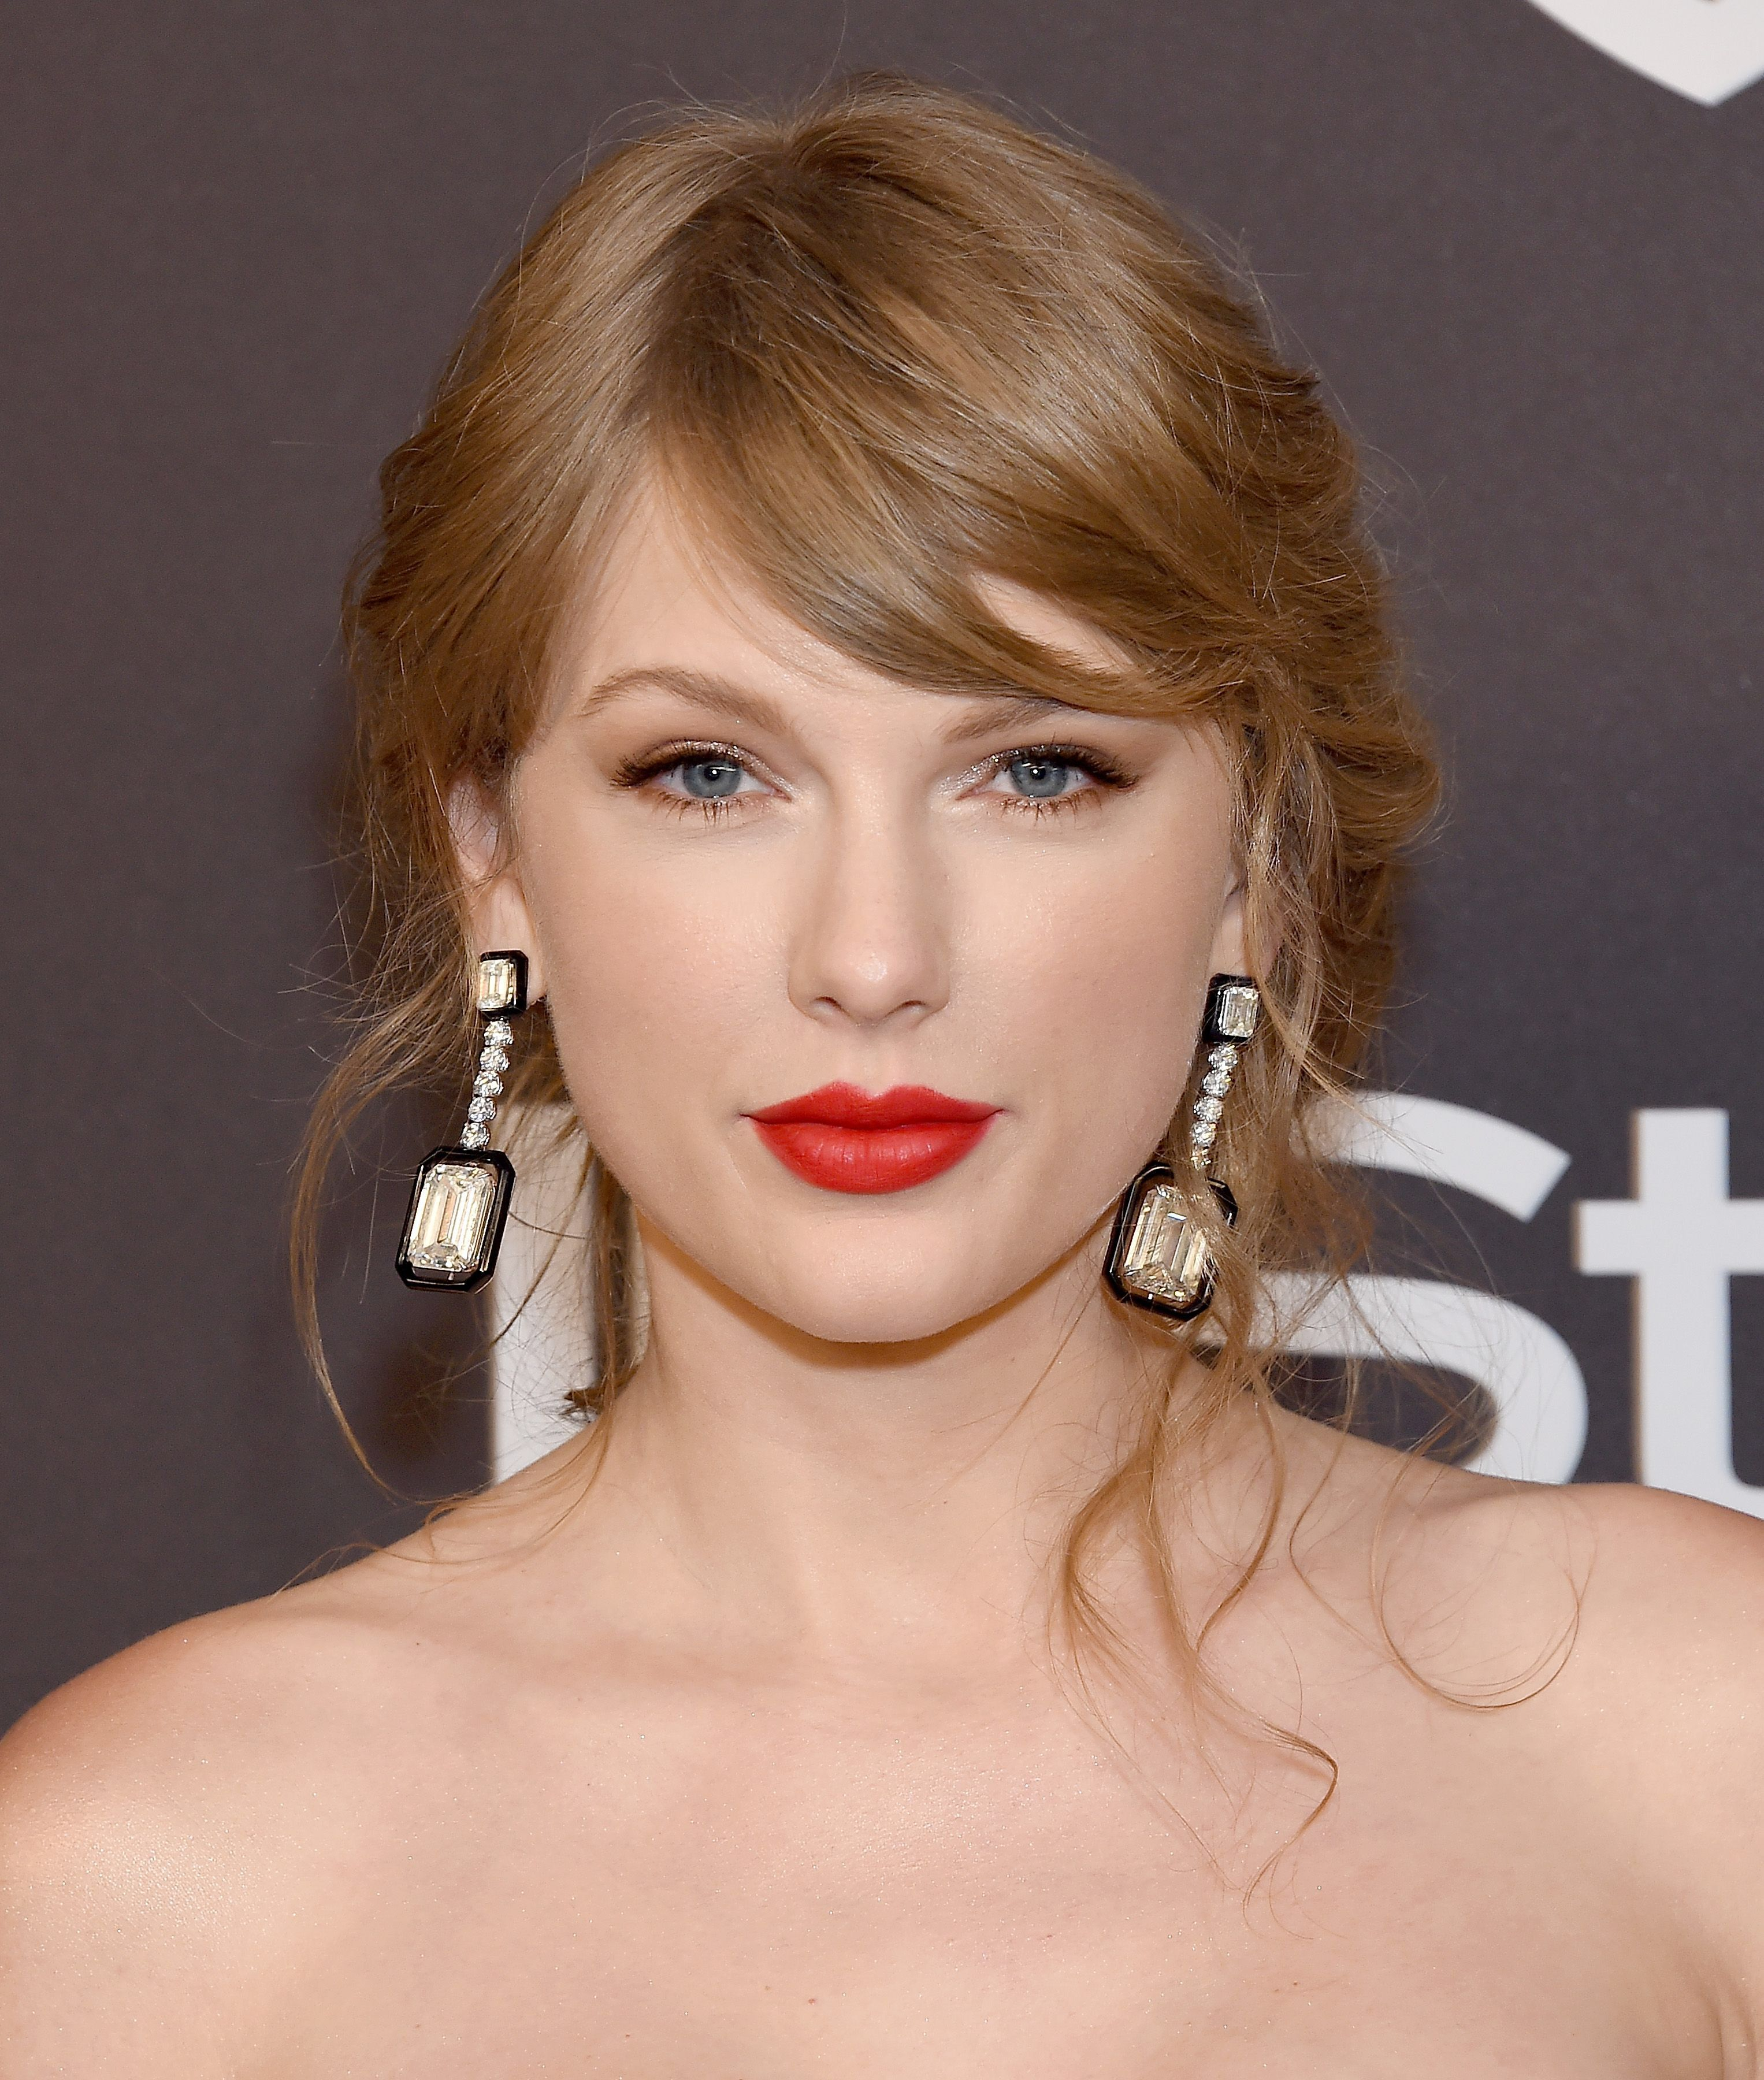 Pin by ♥♥ Dressed to Kill ♥♥ on Taylor Swift   Taylor ...